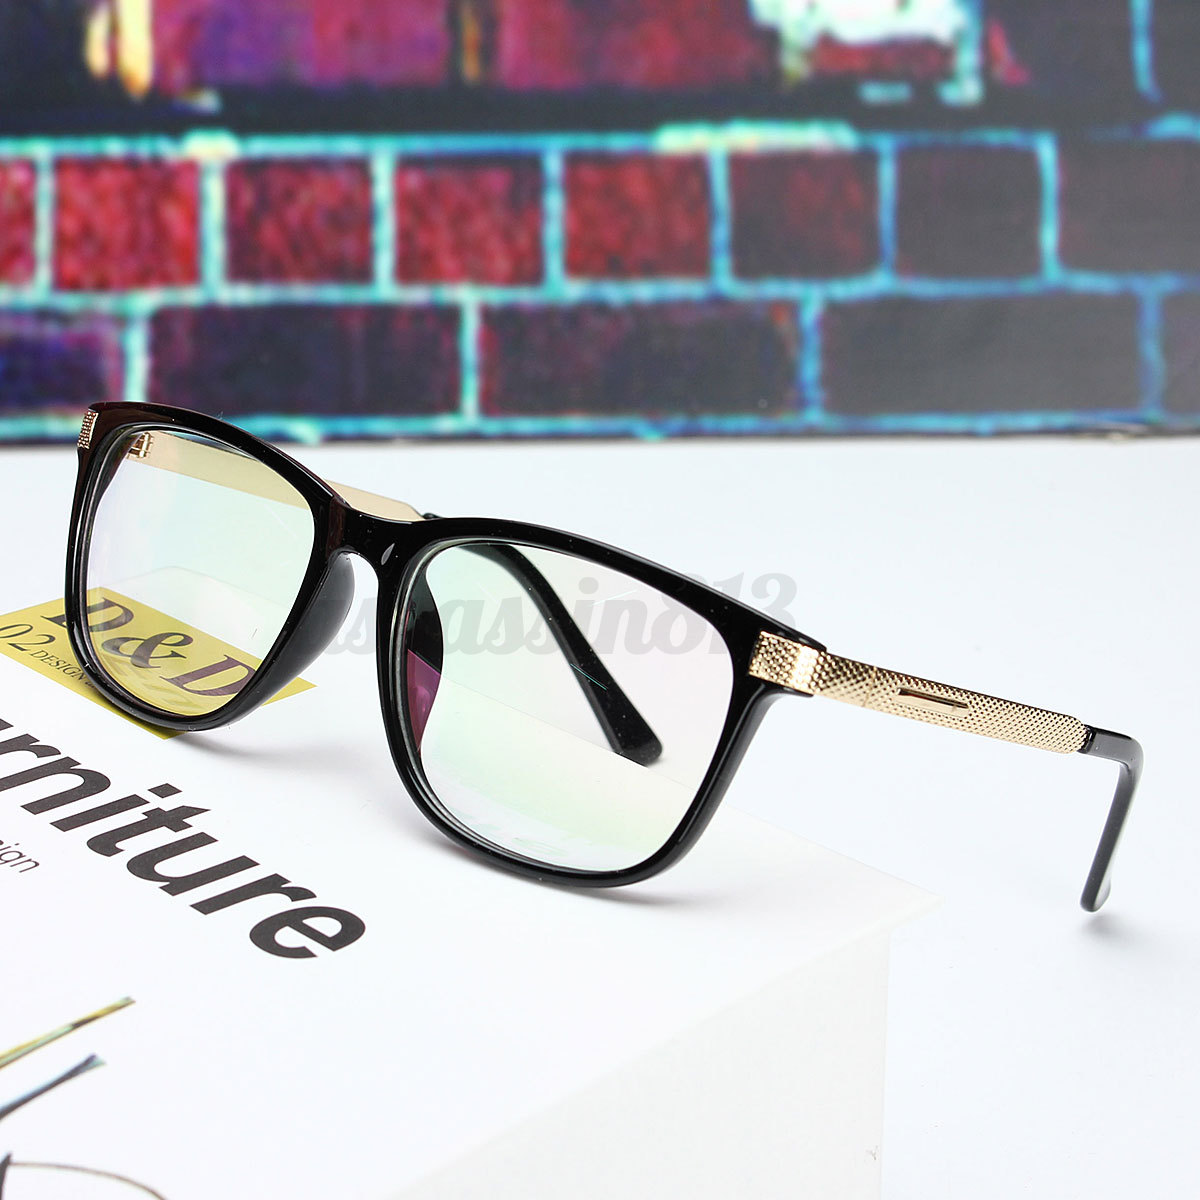 d78a7be9c25 Details about Retro Unisex Eyeglass Frame Full-Rim Glasses Clear Lens Metal  Women Men Designer